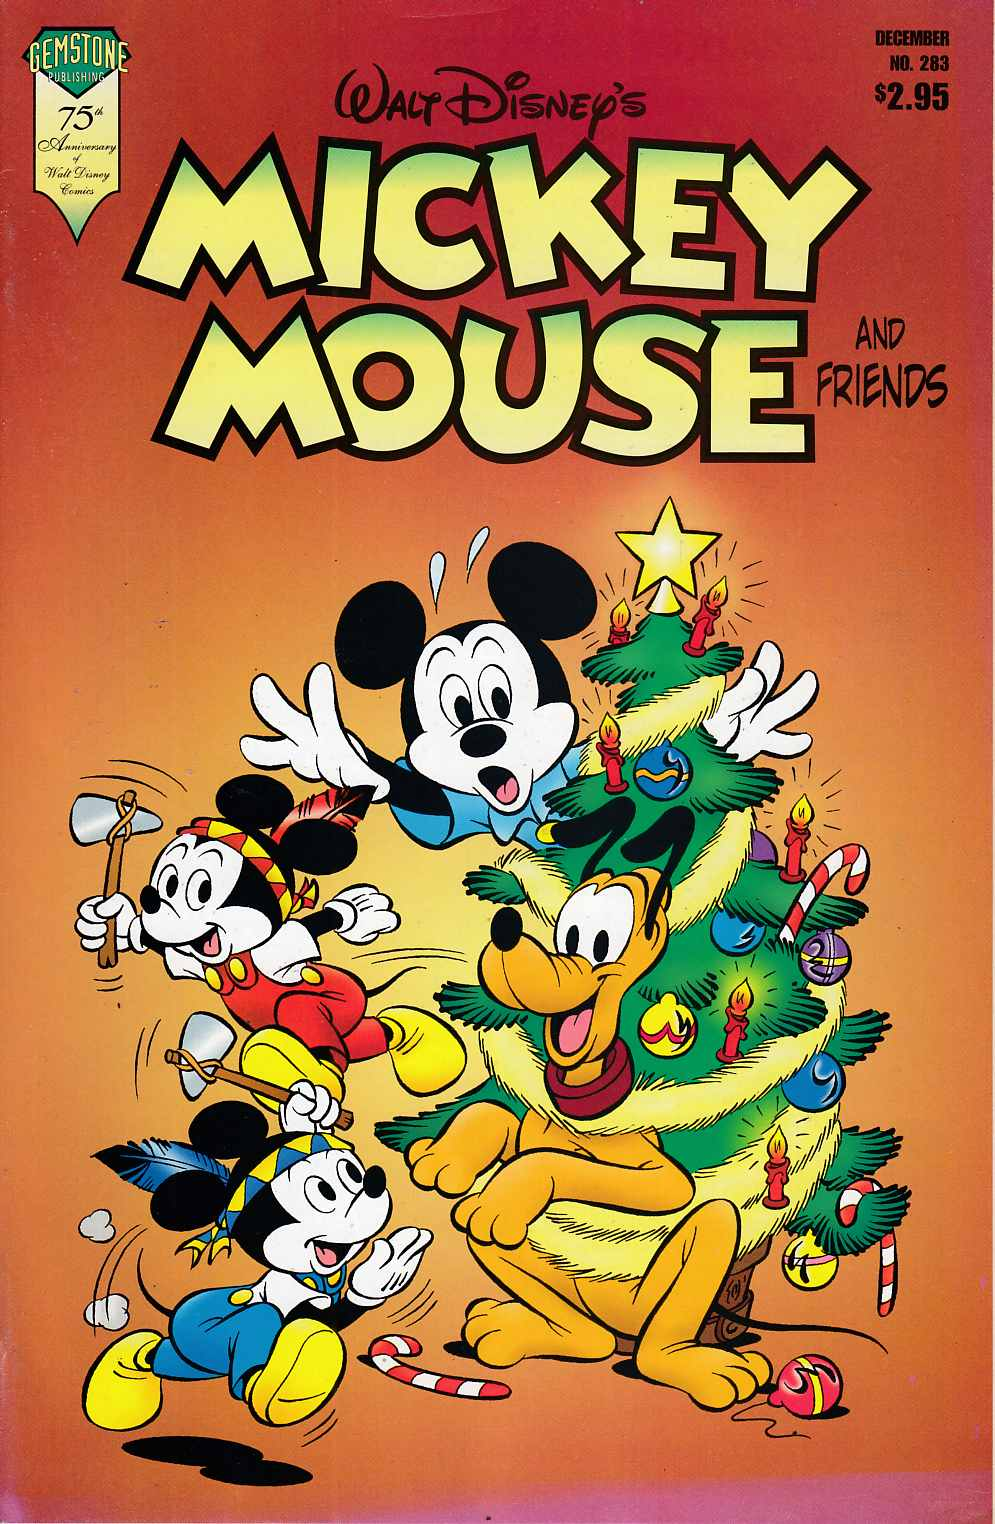 Mickey Mouse and Friends #283 Very Fine (8.0) [Gemstone Comic] THUMBNAIL